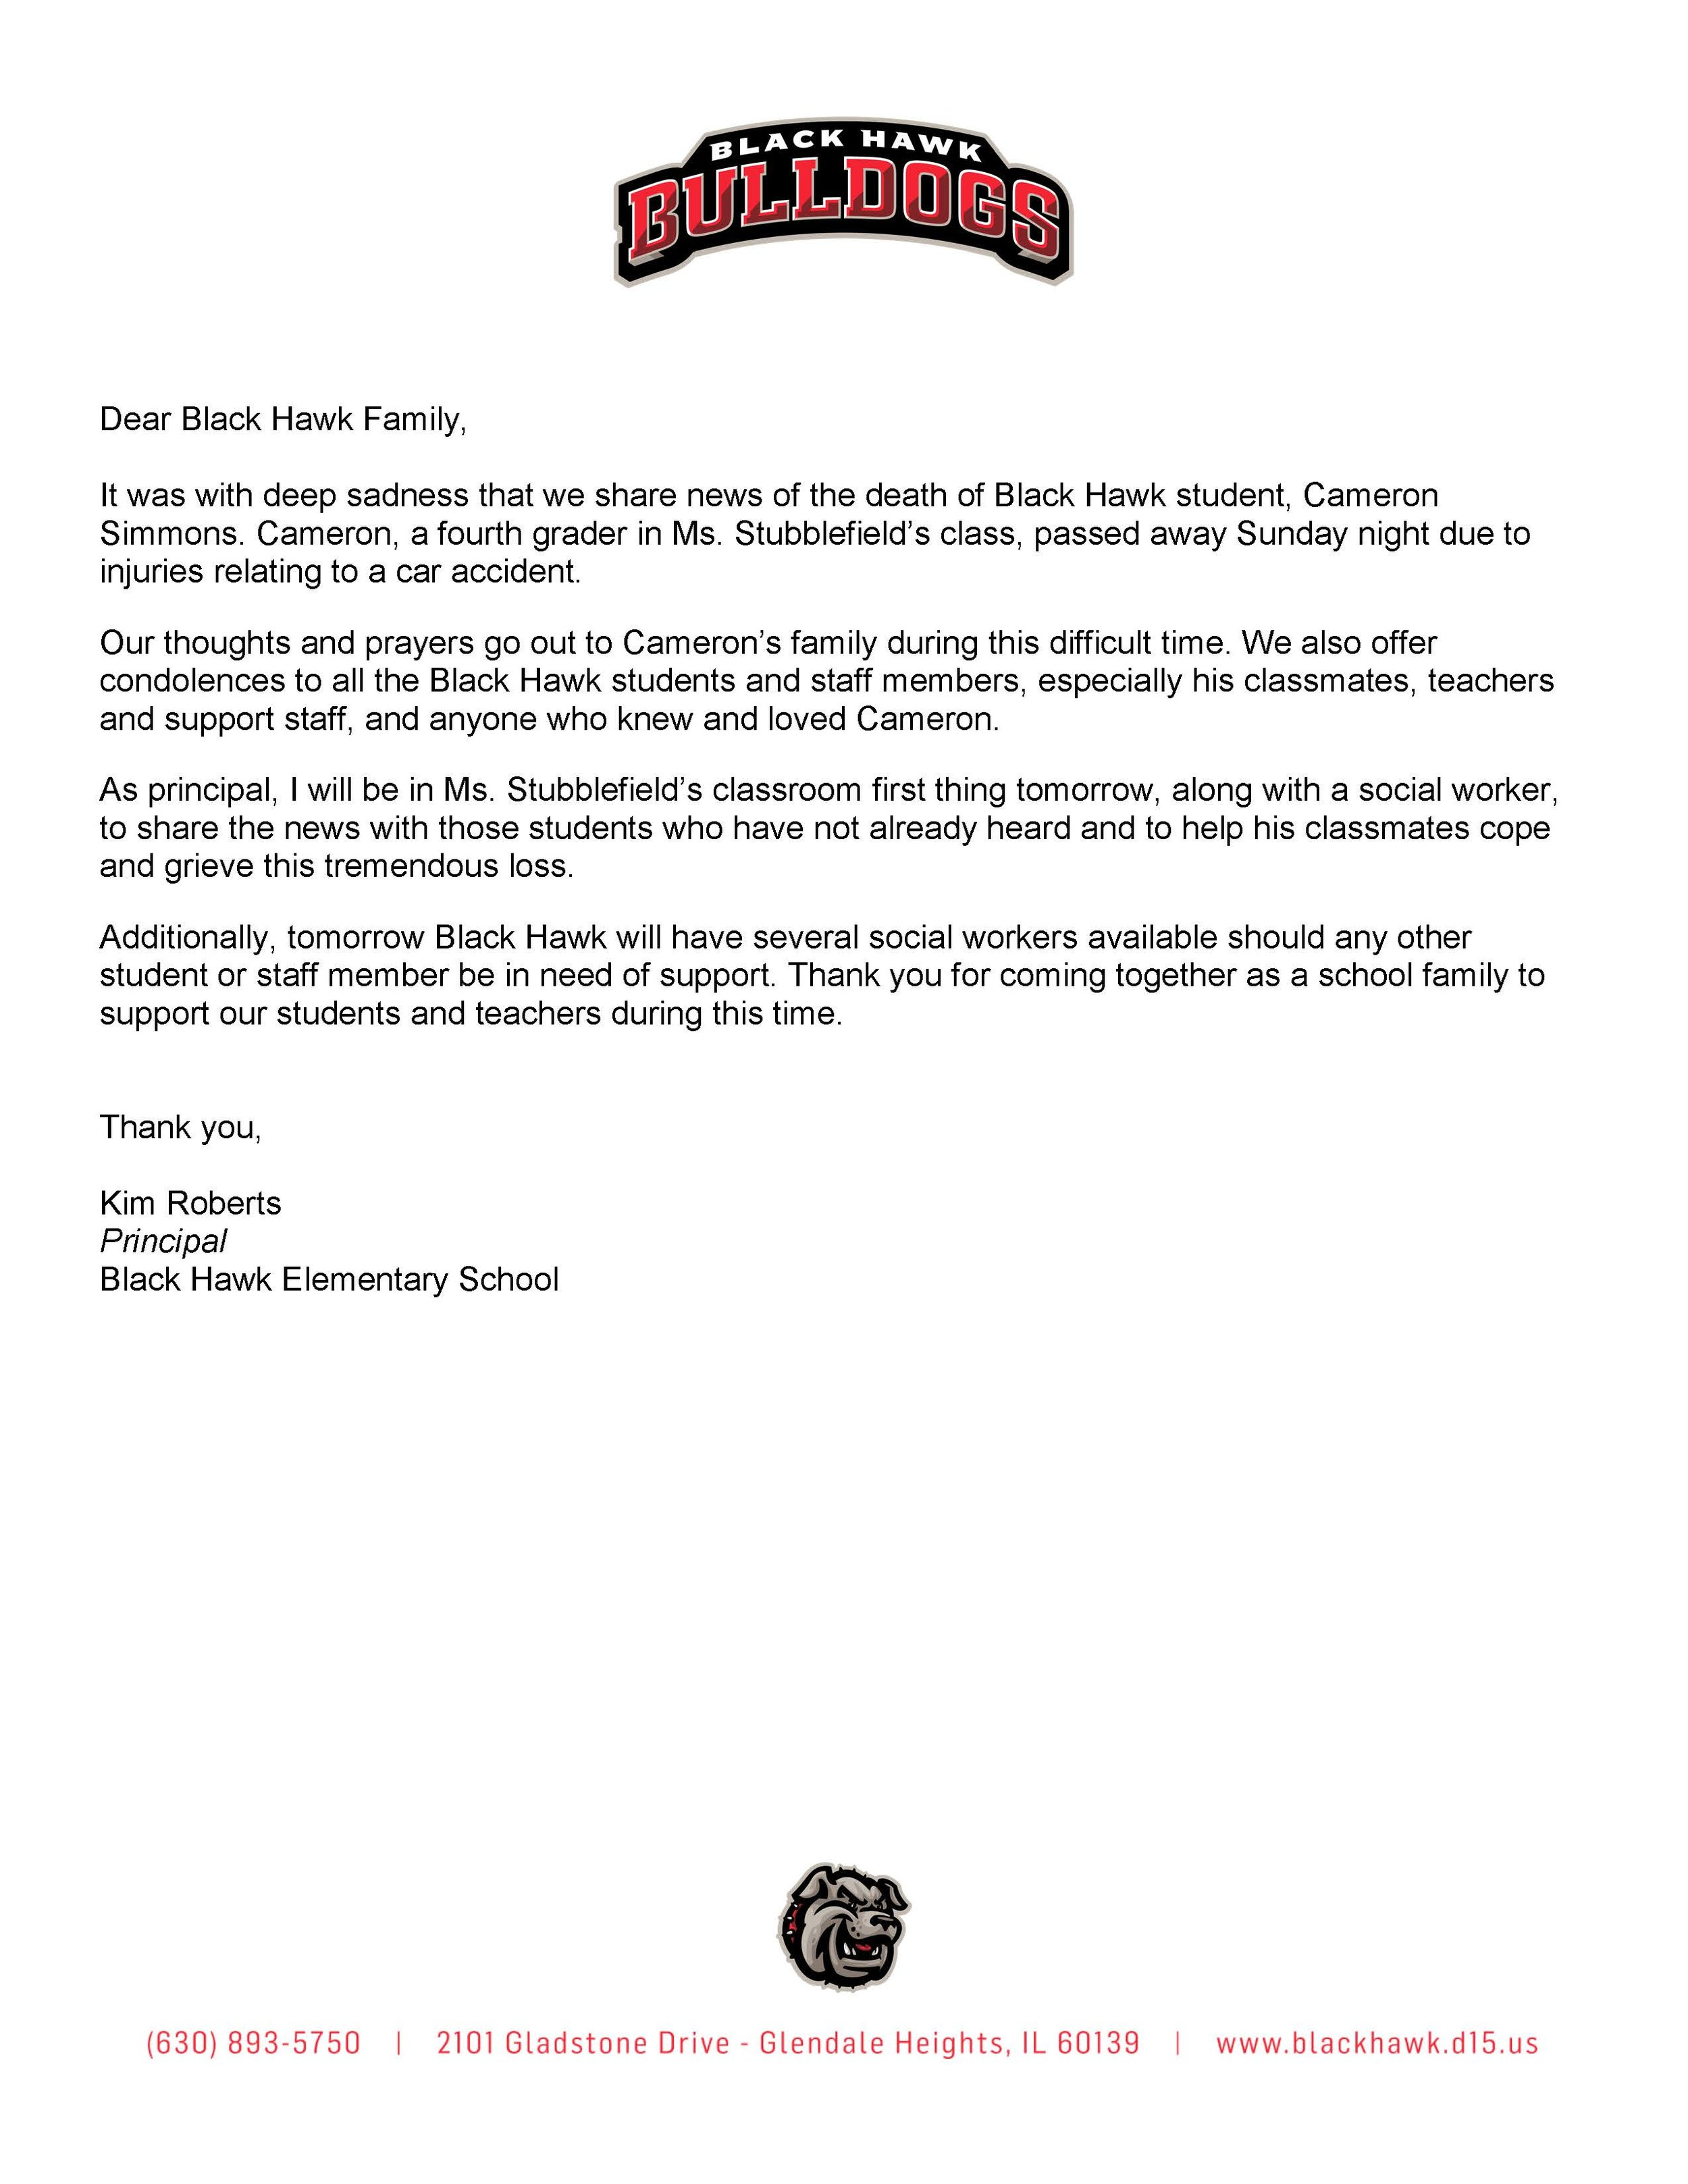 Letter to Black Hawk Parents_Page_1.jpg